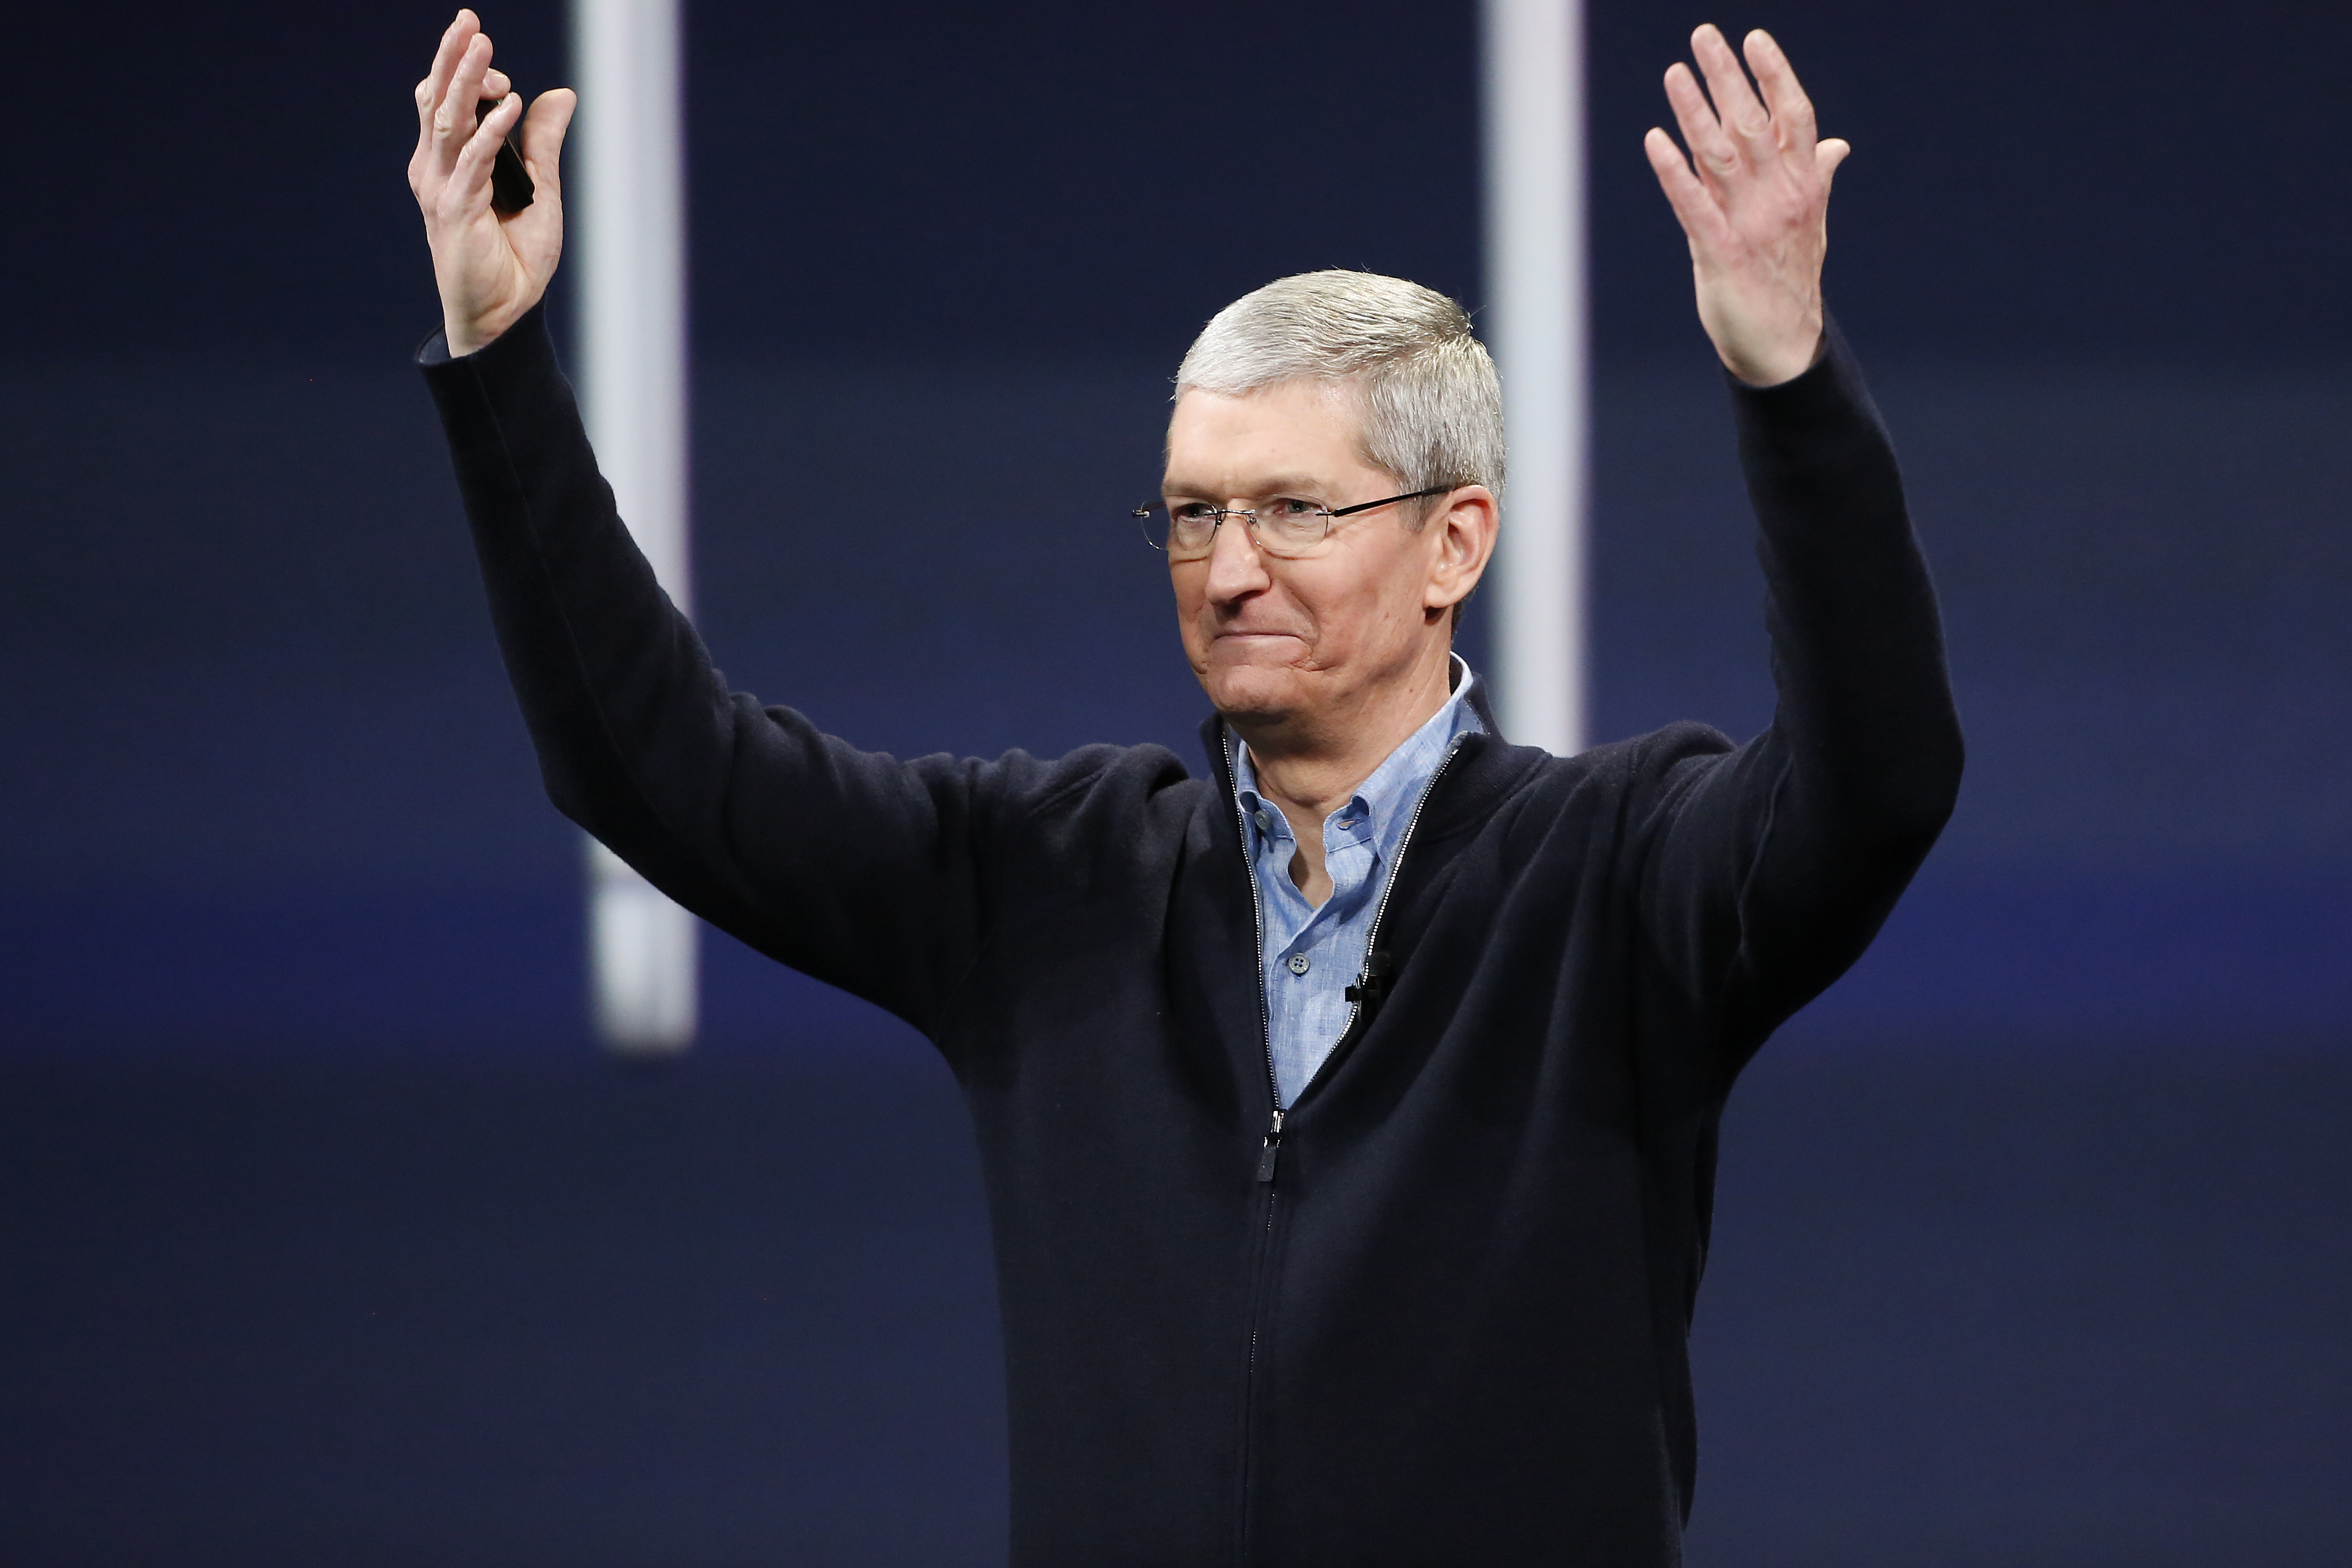 Apple CEO Tim Cook gestures on stage during an Apple special event at the Yerba Buena Center for the Arts on March 9, 2015 in San Francisco, California.